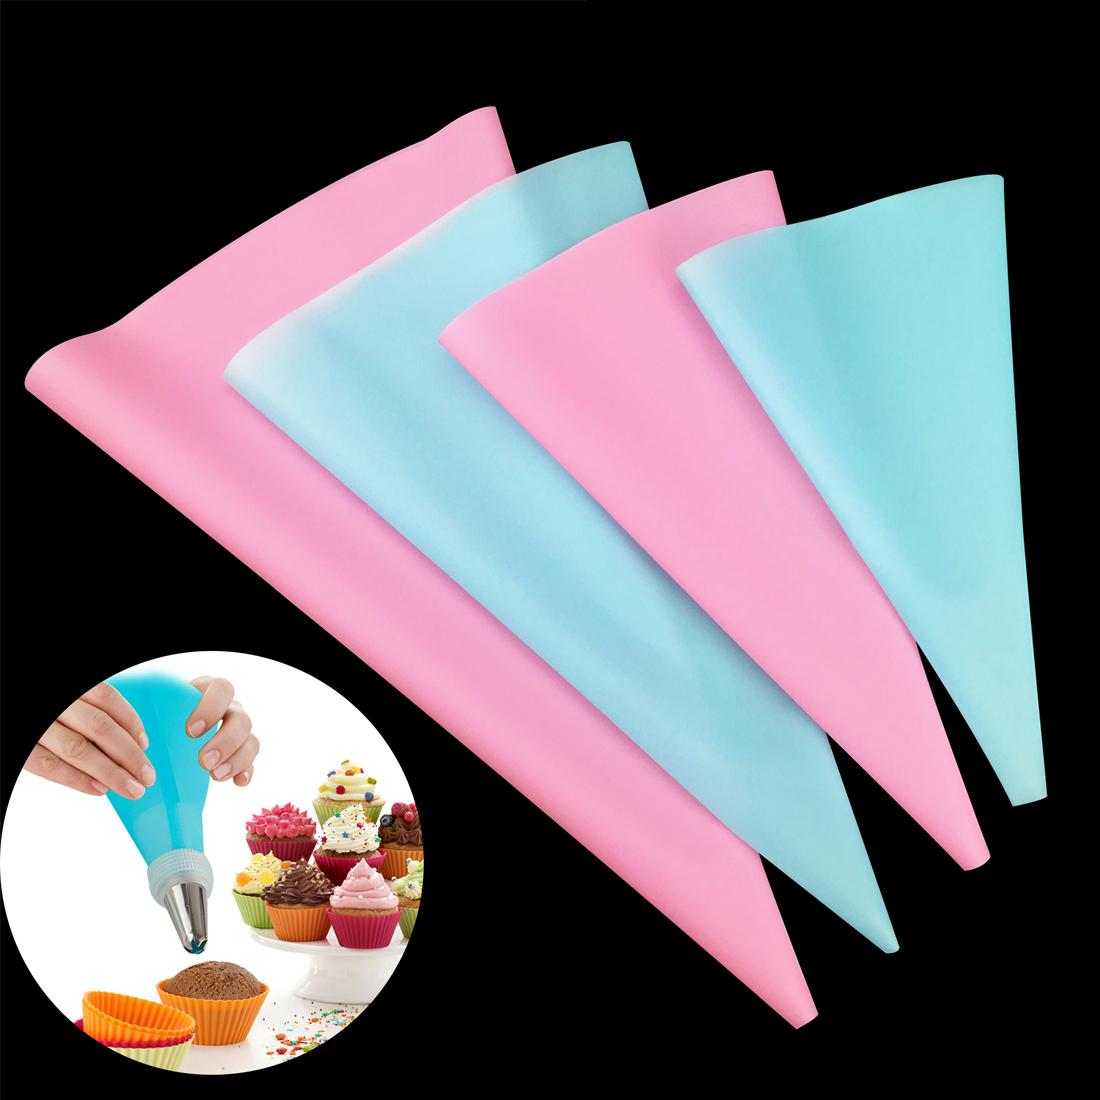 4pcs/Set Reusable Confectionery Silicone Icing Piping Cream Pastry Bag squeeze Nozzle Cake Decorating Baking Decorating Tools FREE SHIPPING